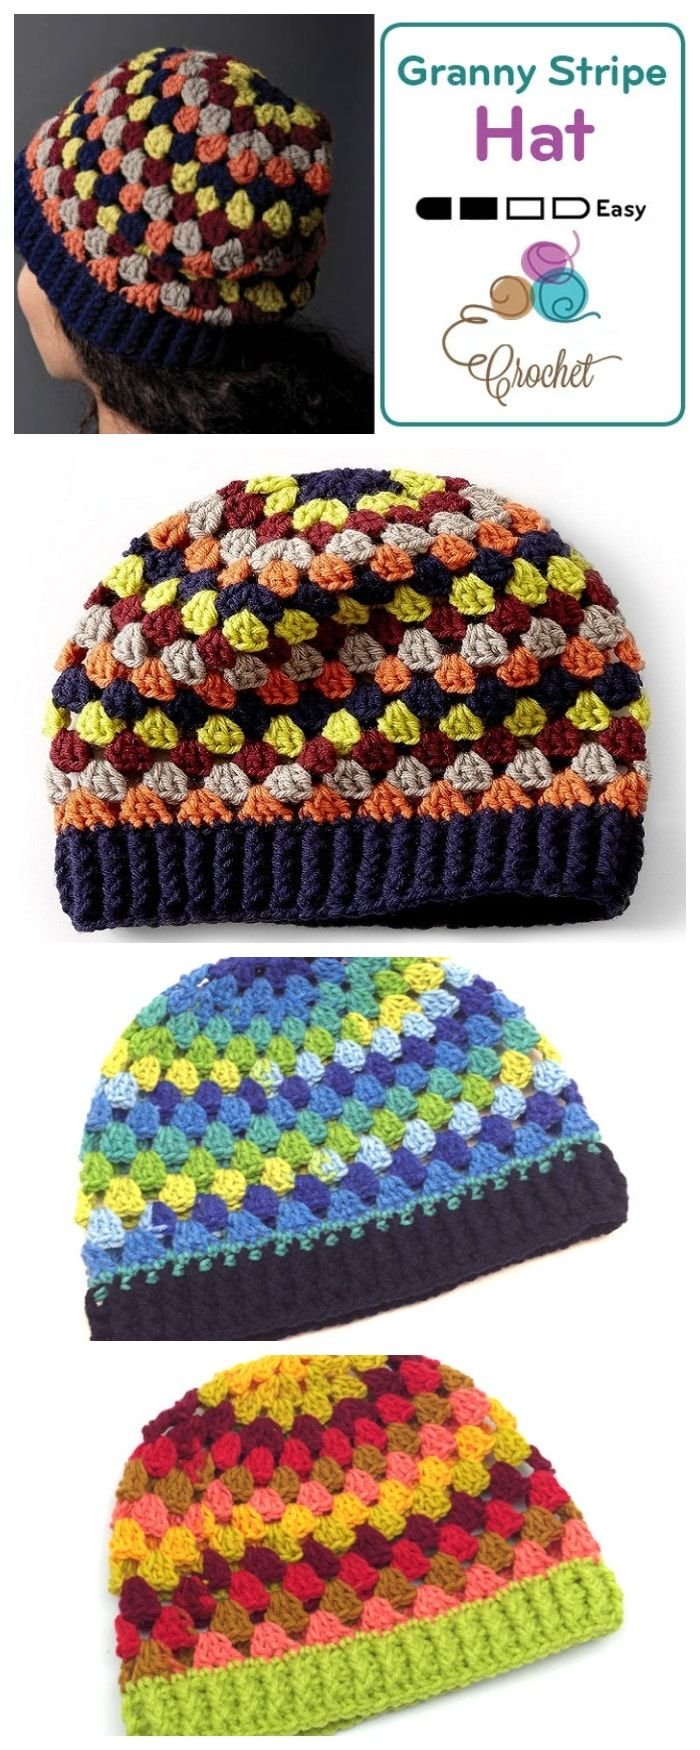 Crochet Granny Stripe Hat | Knitting Knitting Knitting PINS for ALL ...